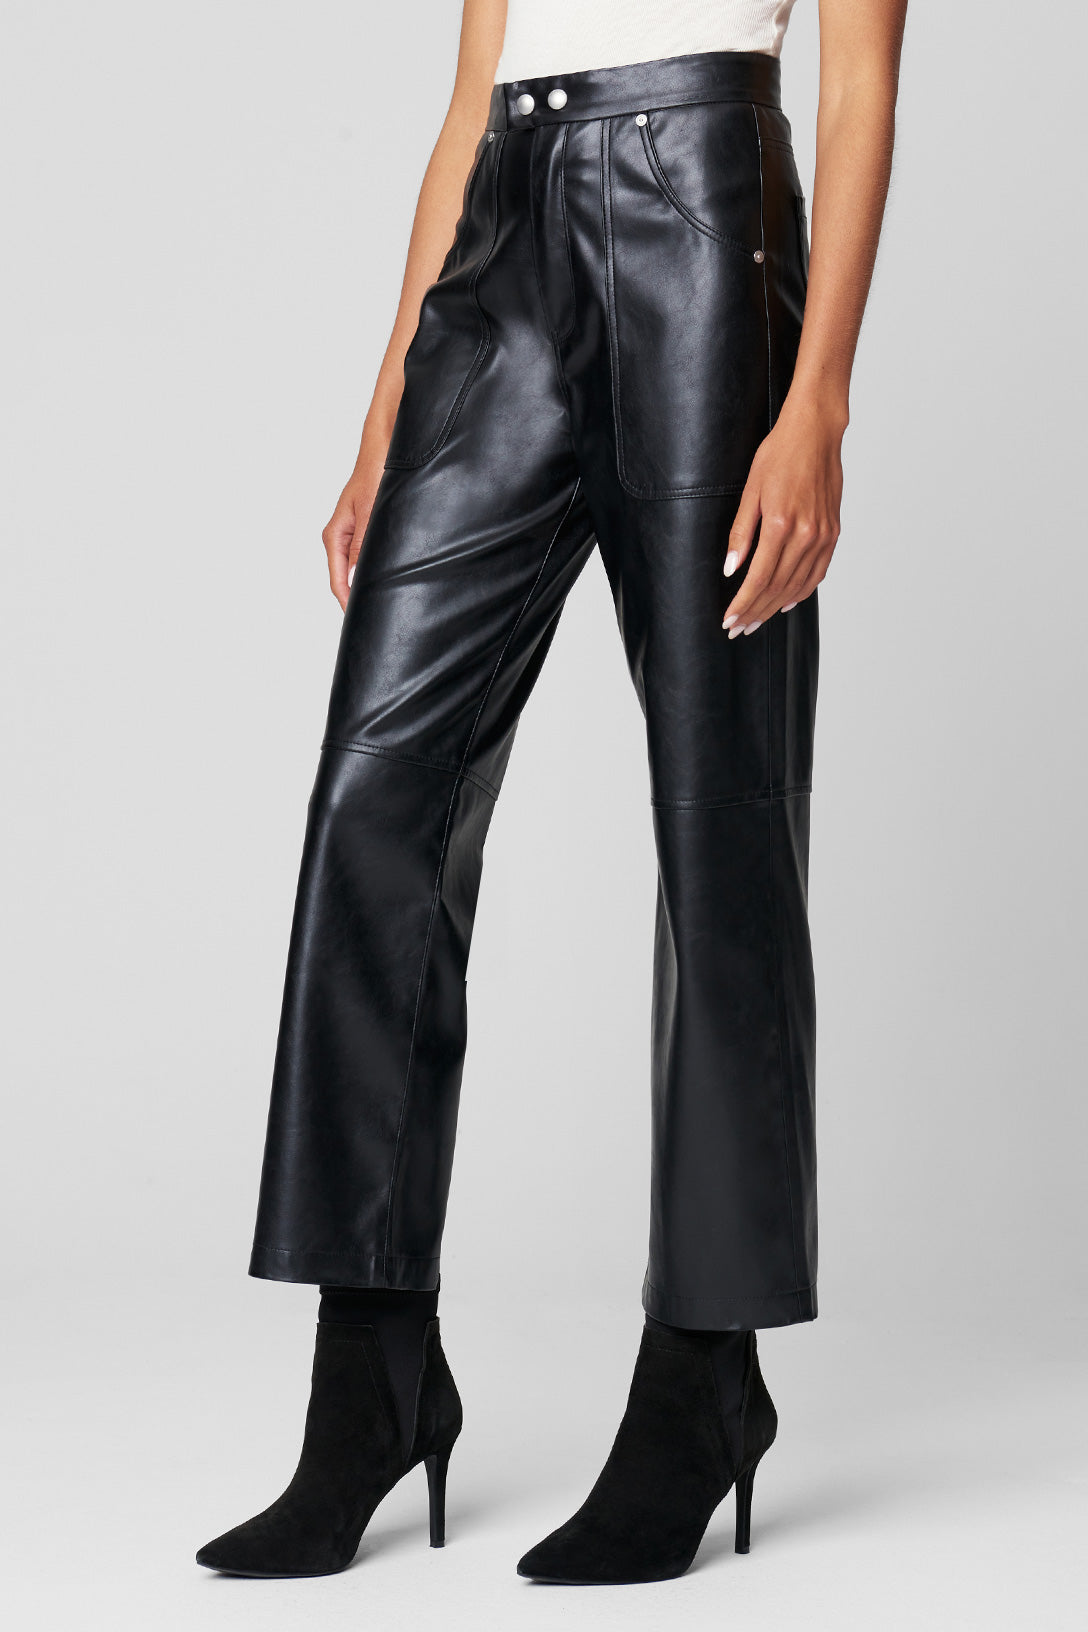 Track Record Pant   Blank NYC